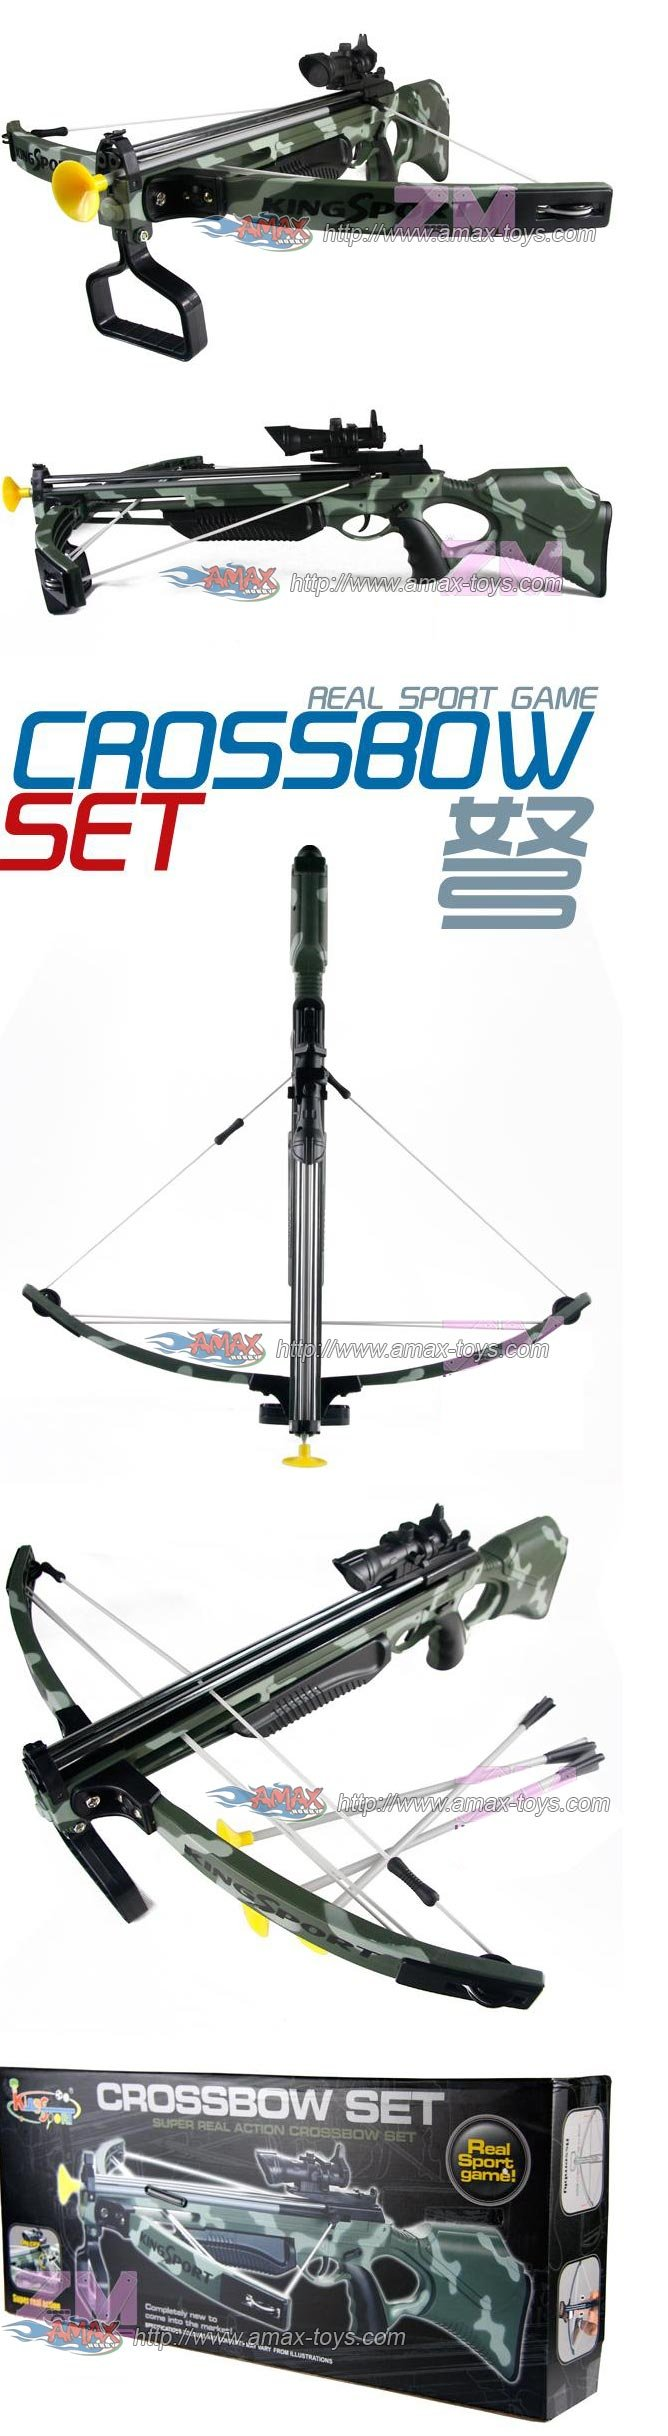 Deluxe Action Military Crossbow Set with Scope 30''